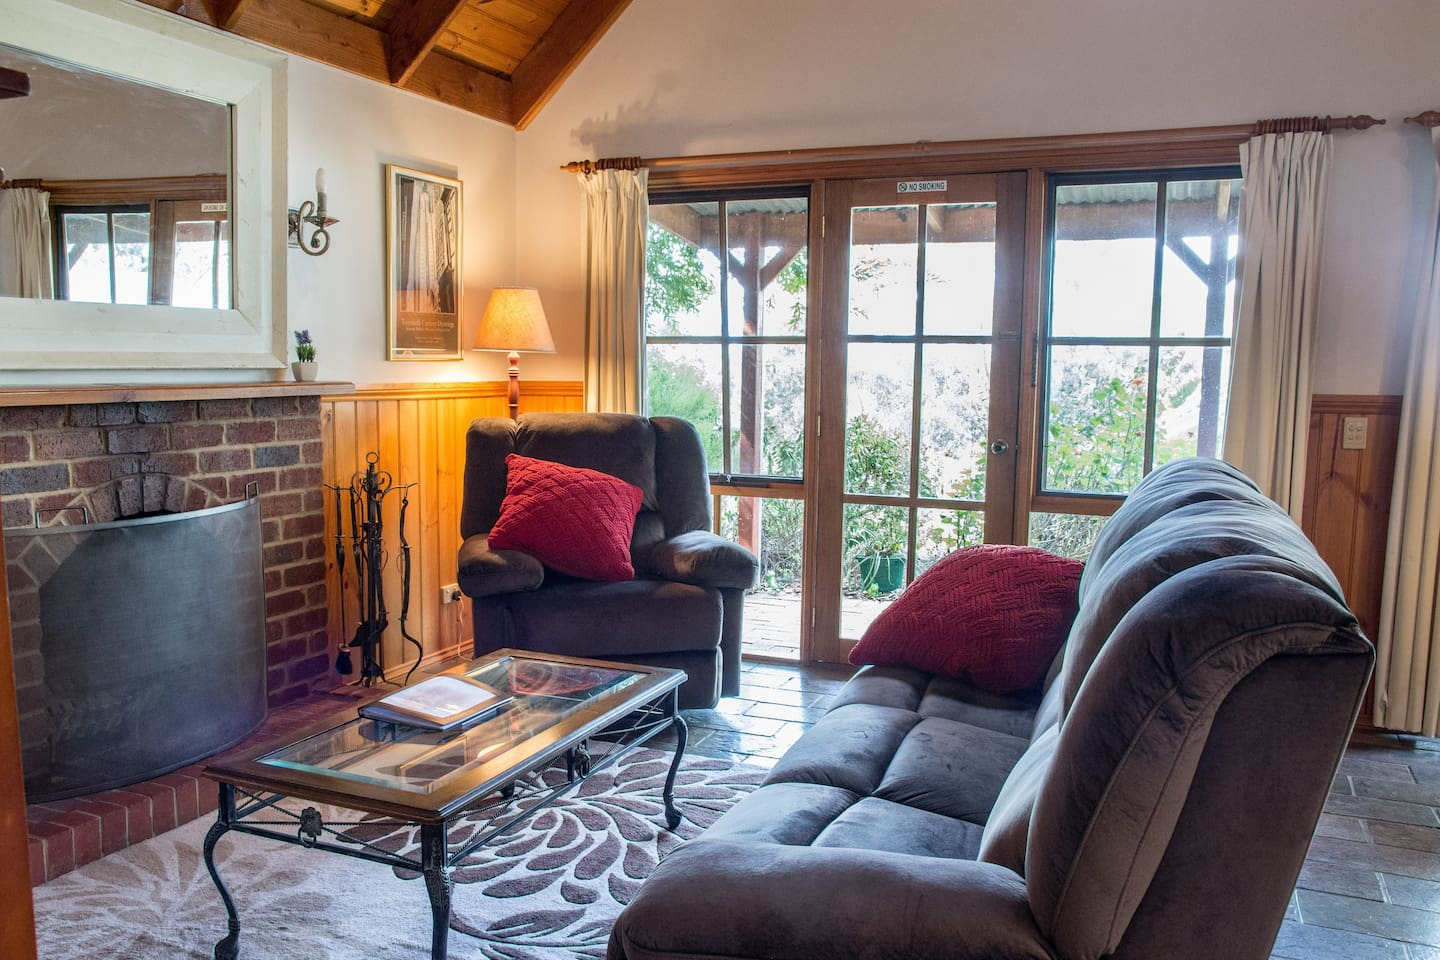 Cosy recliner lounges in the sunshine or by the fire as you read a book, watch a movie or have a nightcap